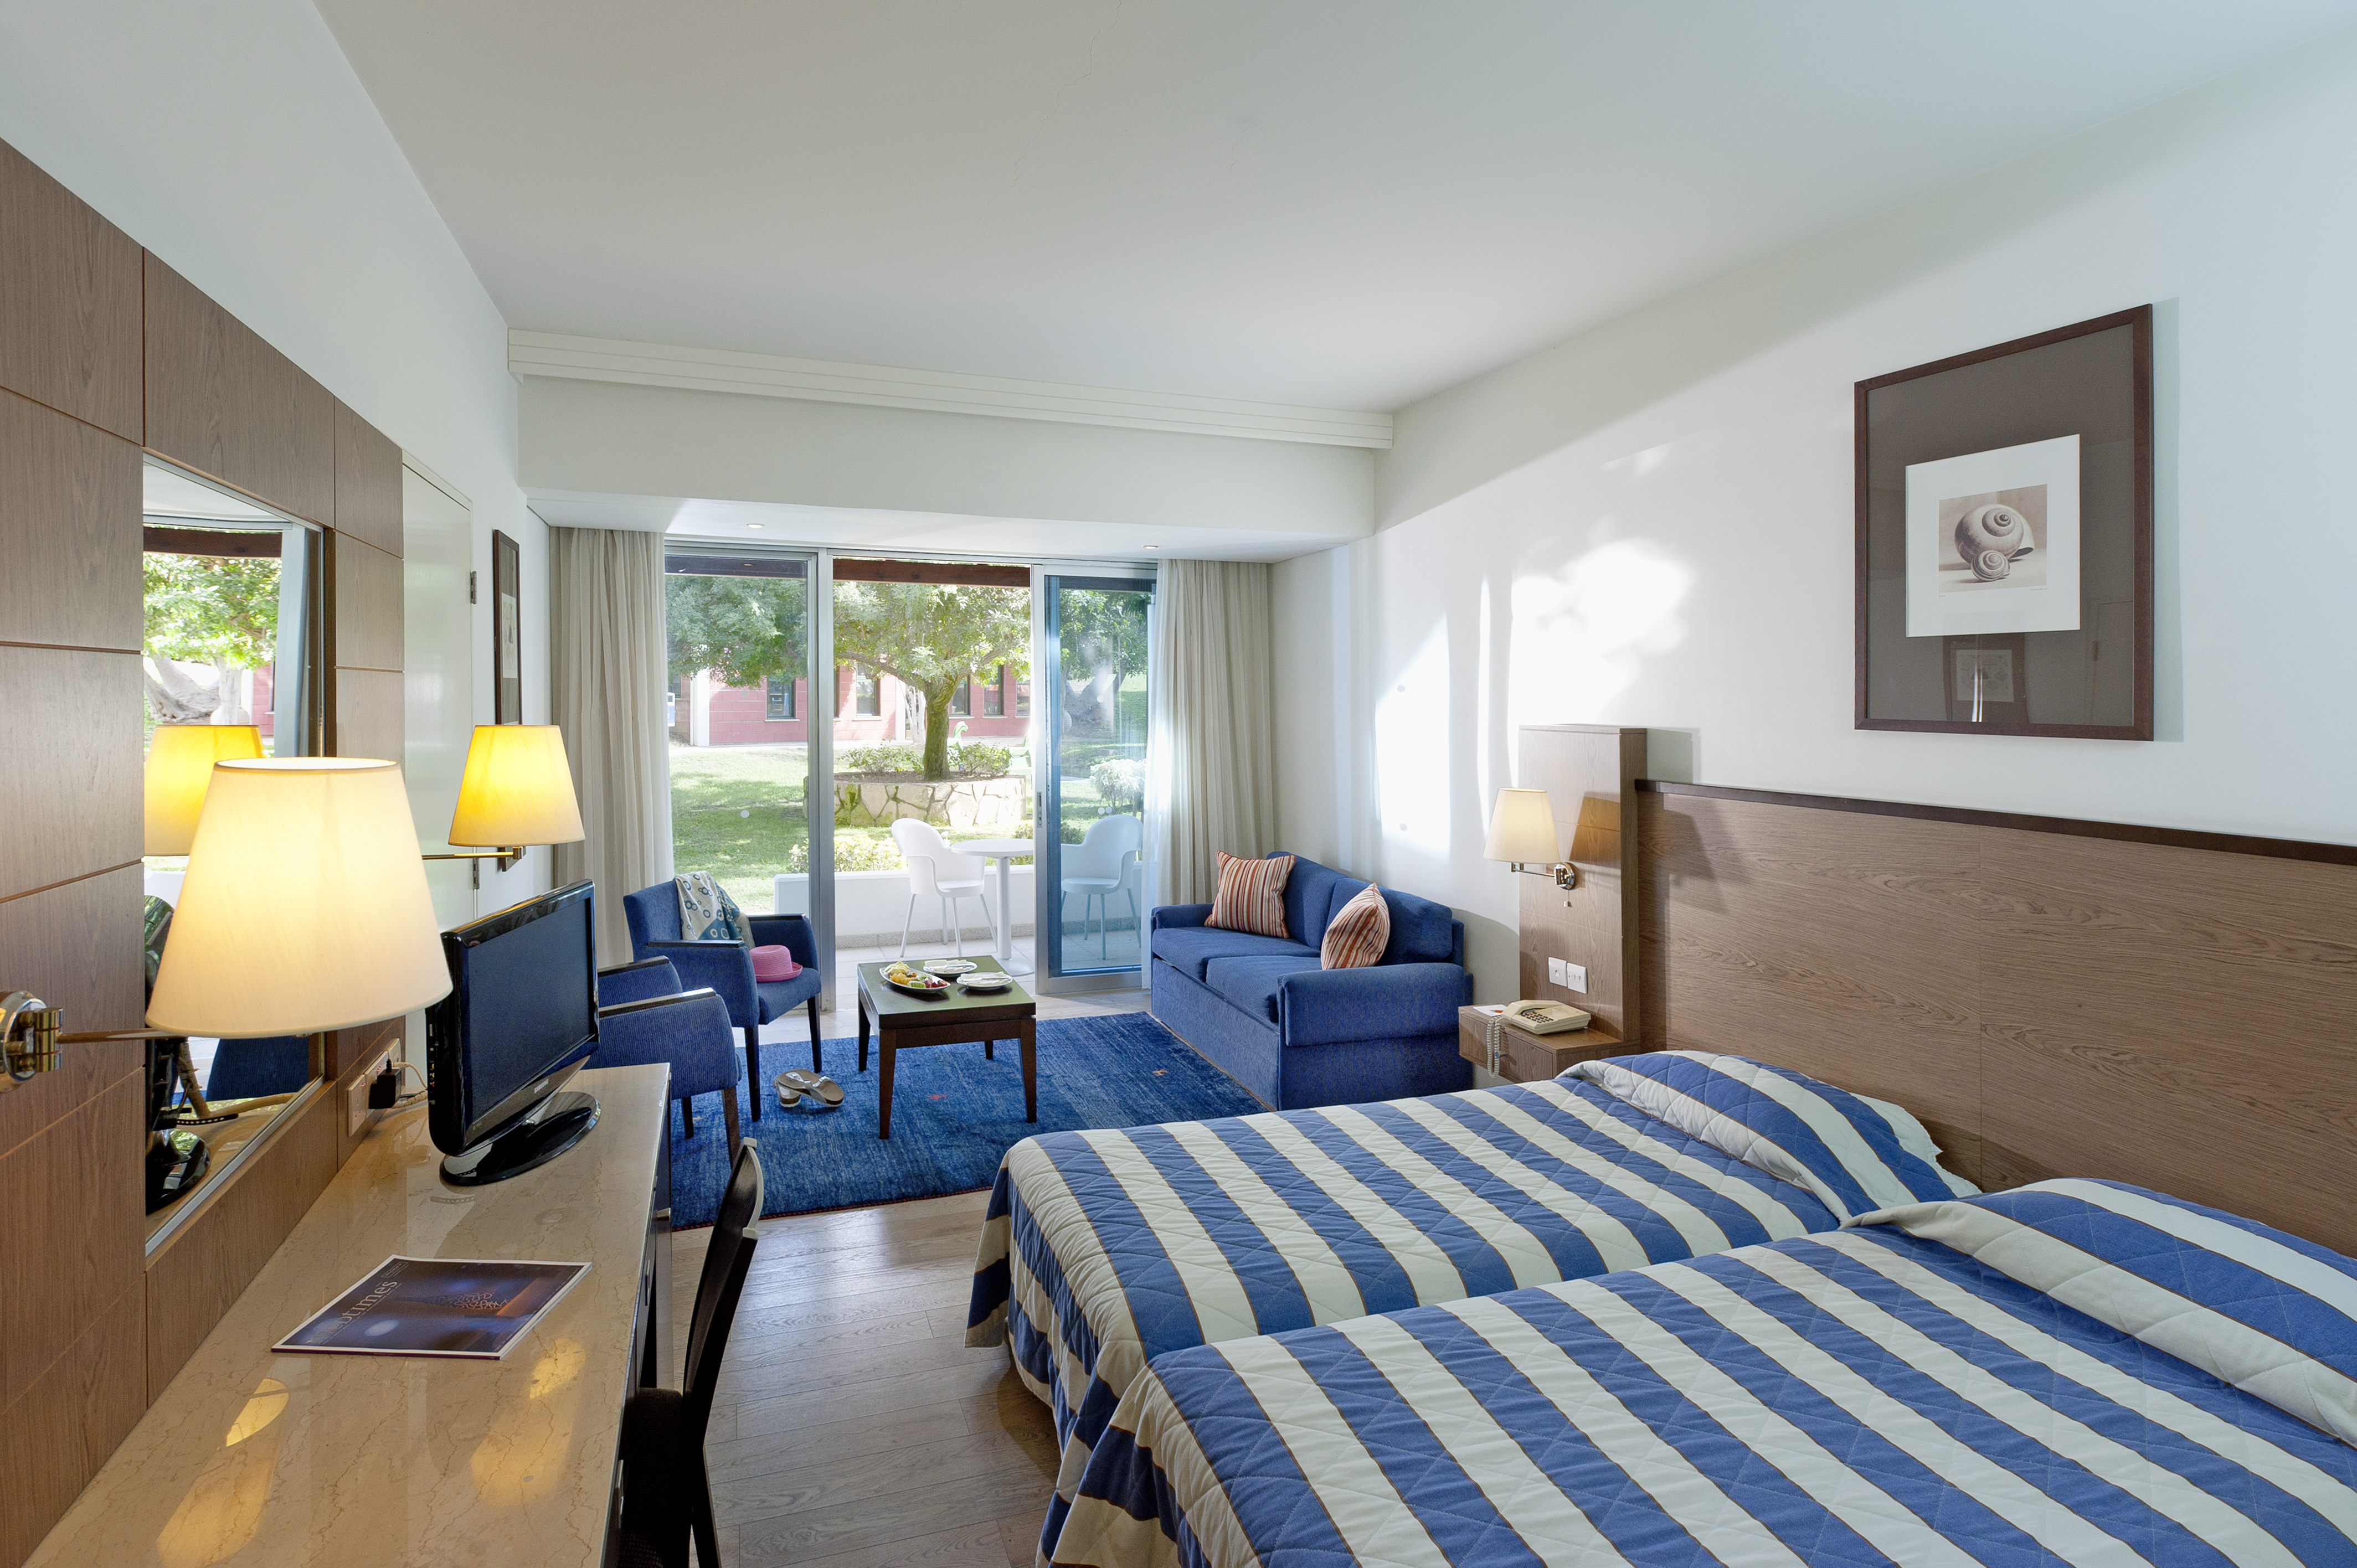 Mediterranean Beach Hotel Family Room